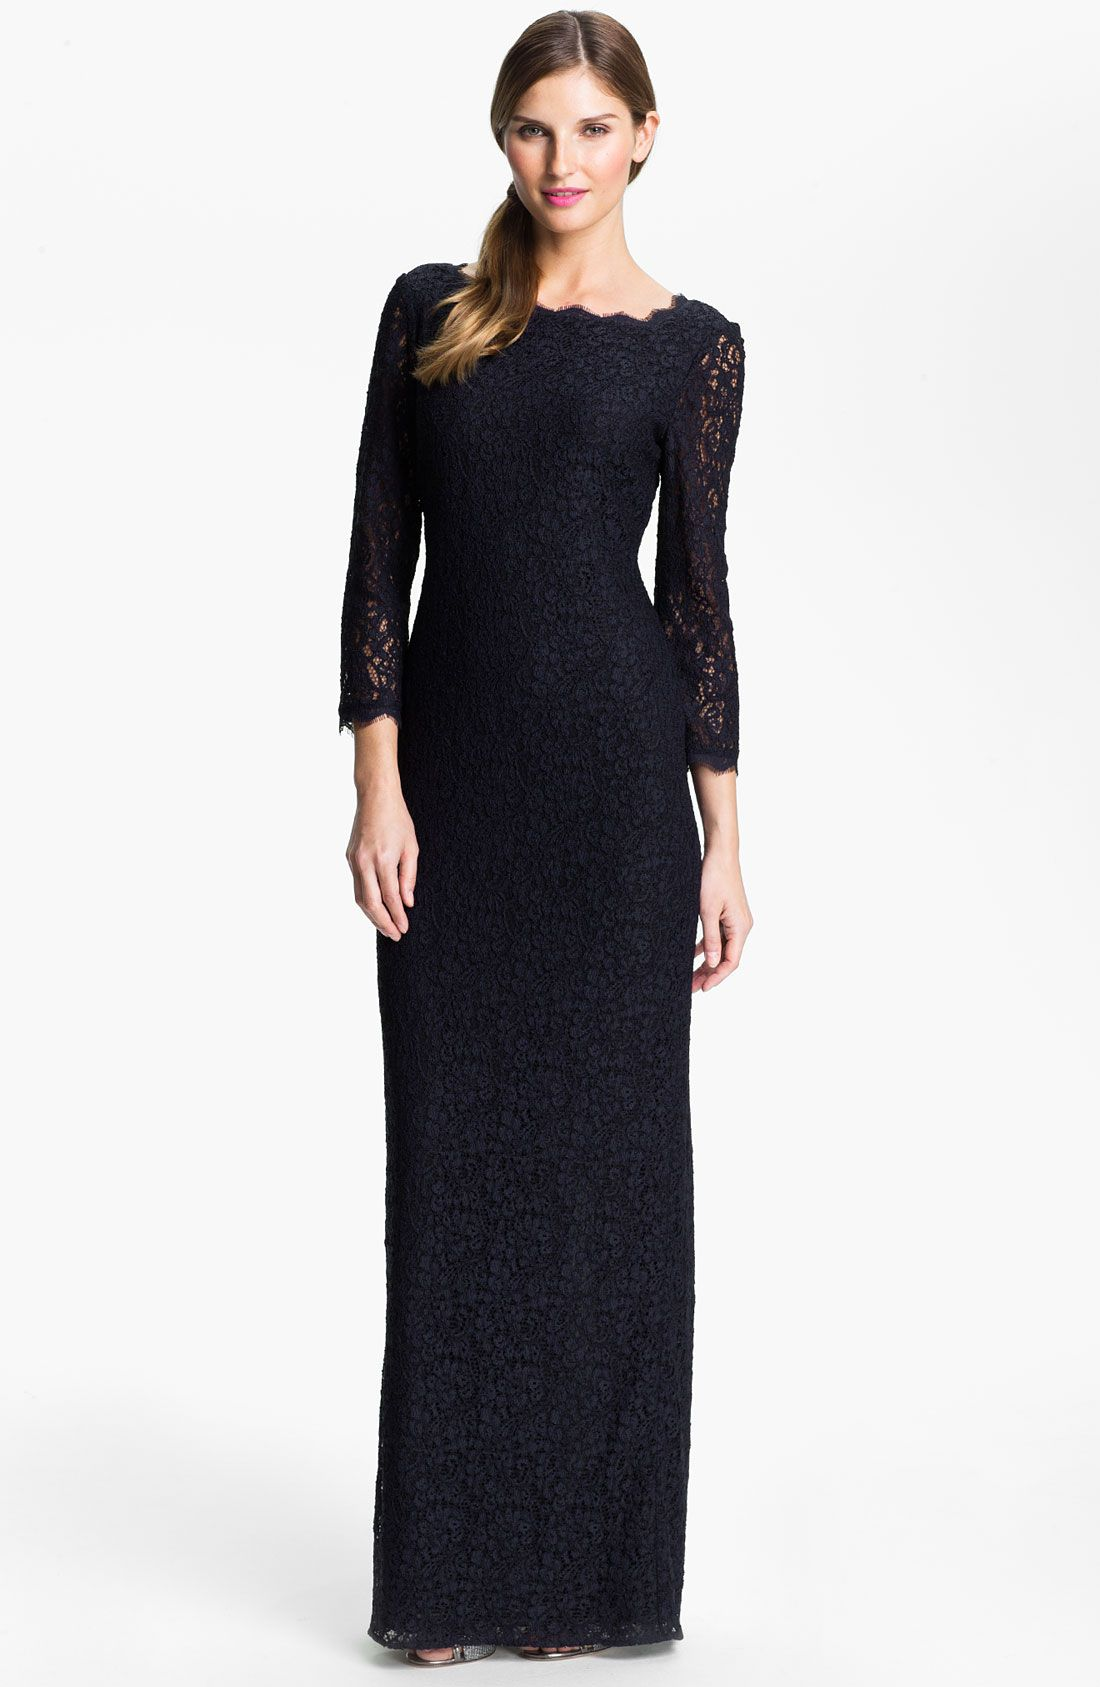 Adrianna Papell Scalloped Lace Gown | Nordstrom | in the evening I ...